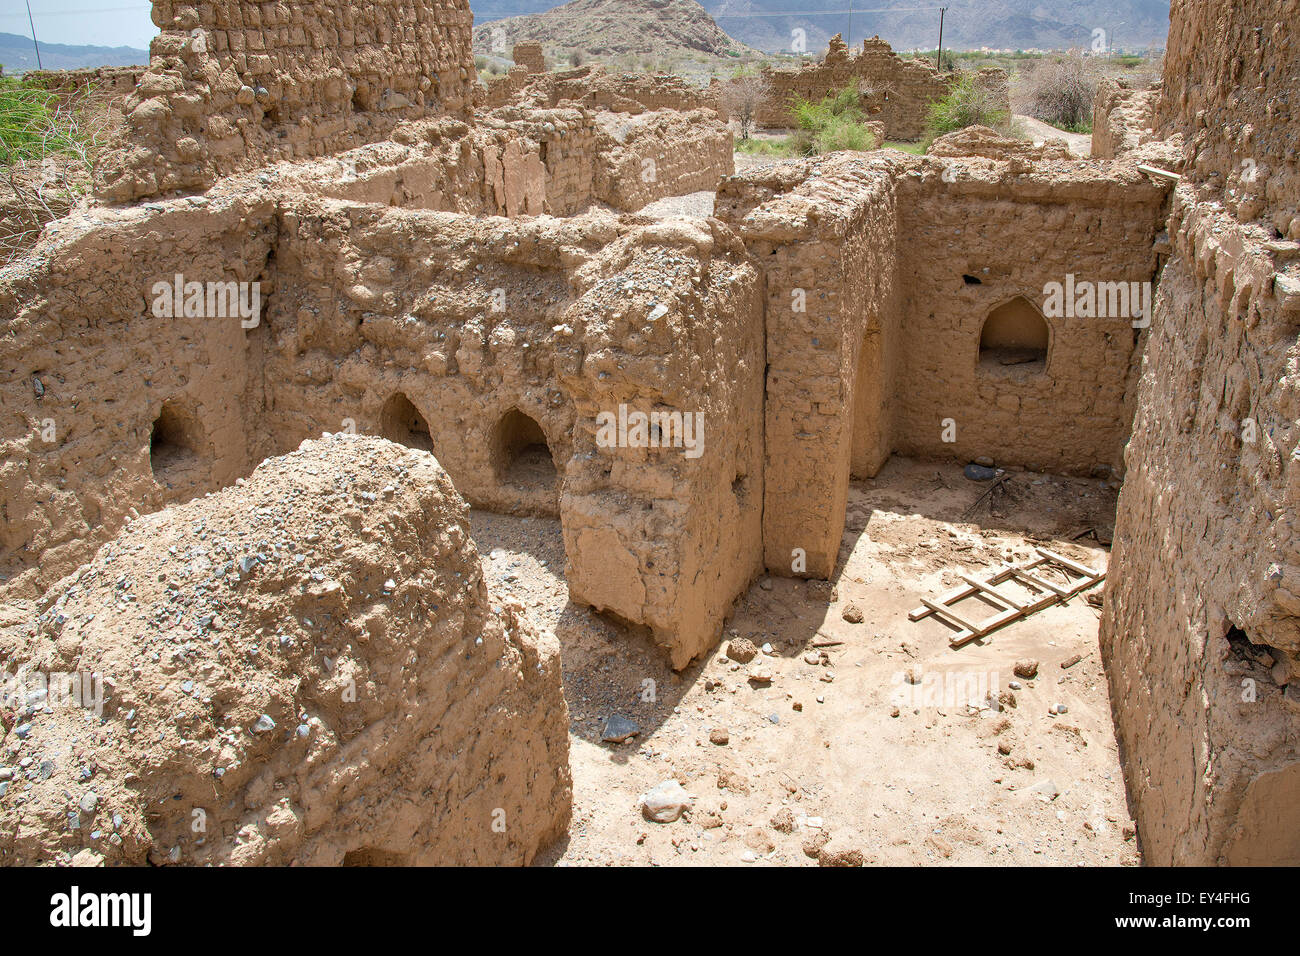 Image of historic ruins in the town Tanuf in Sultanate Oman, middle east - Stock Image